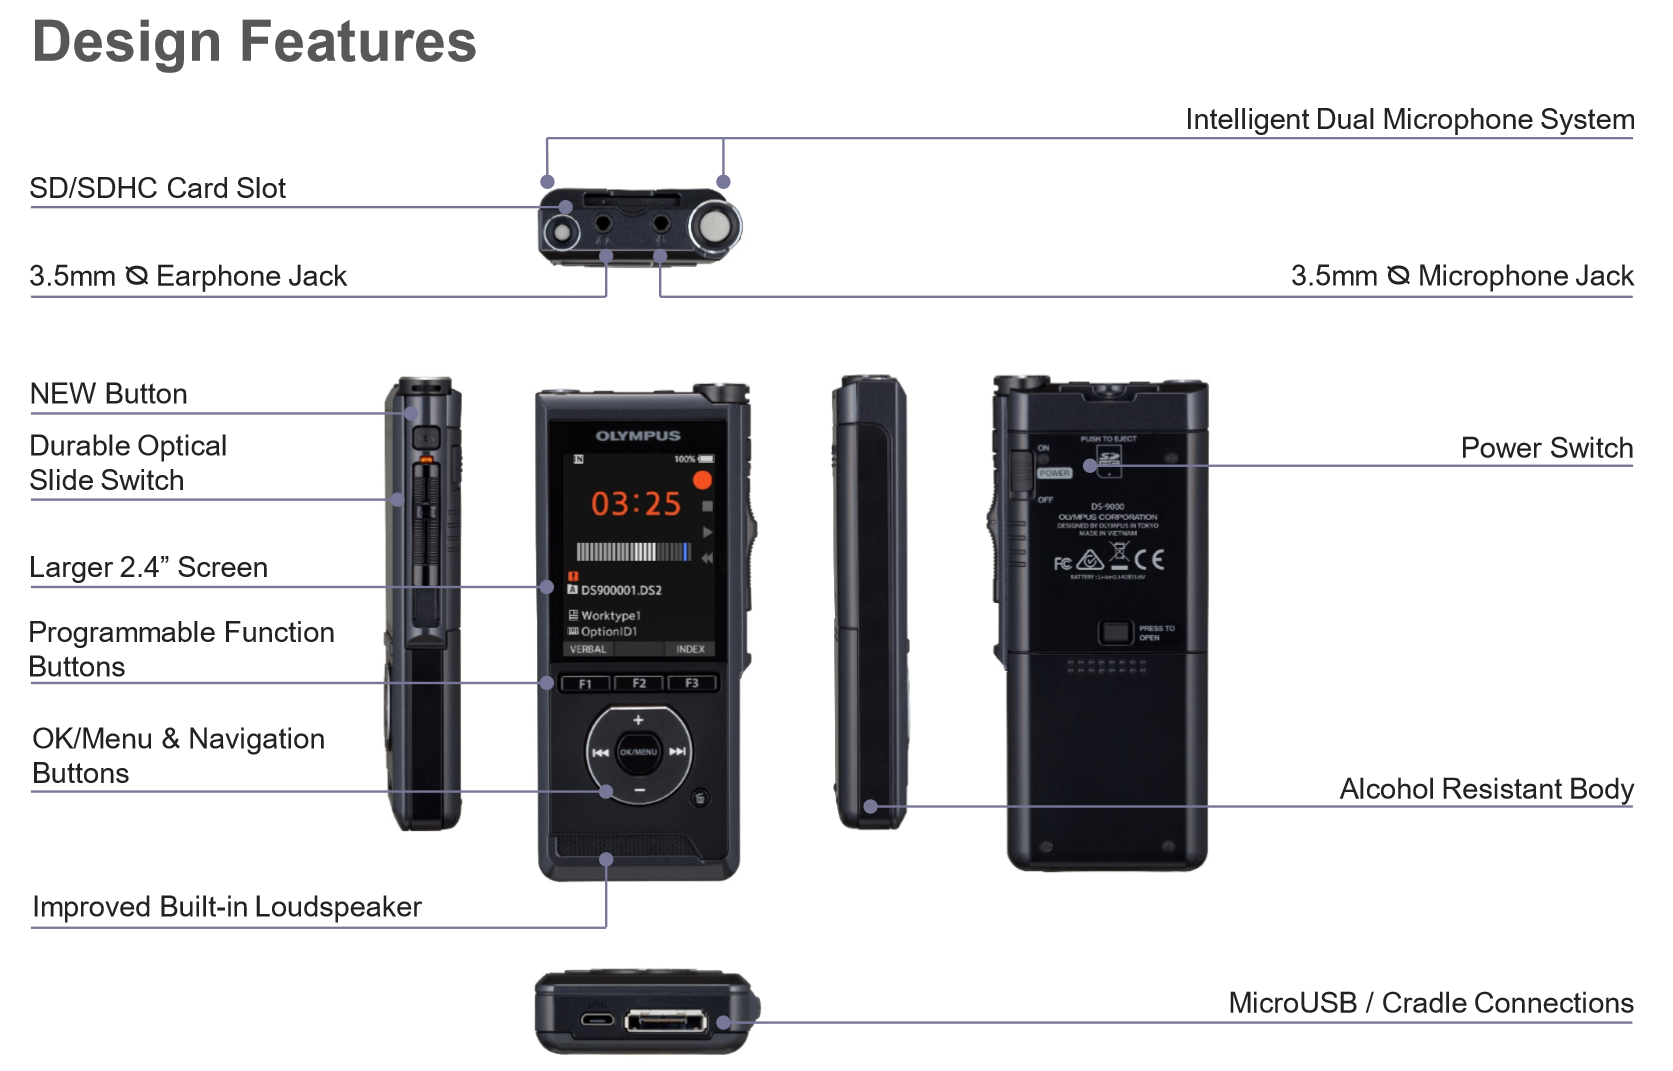 DS-9000 Recorder & Docking Cradle/Power Supply